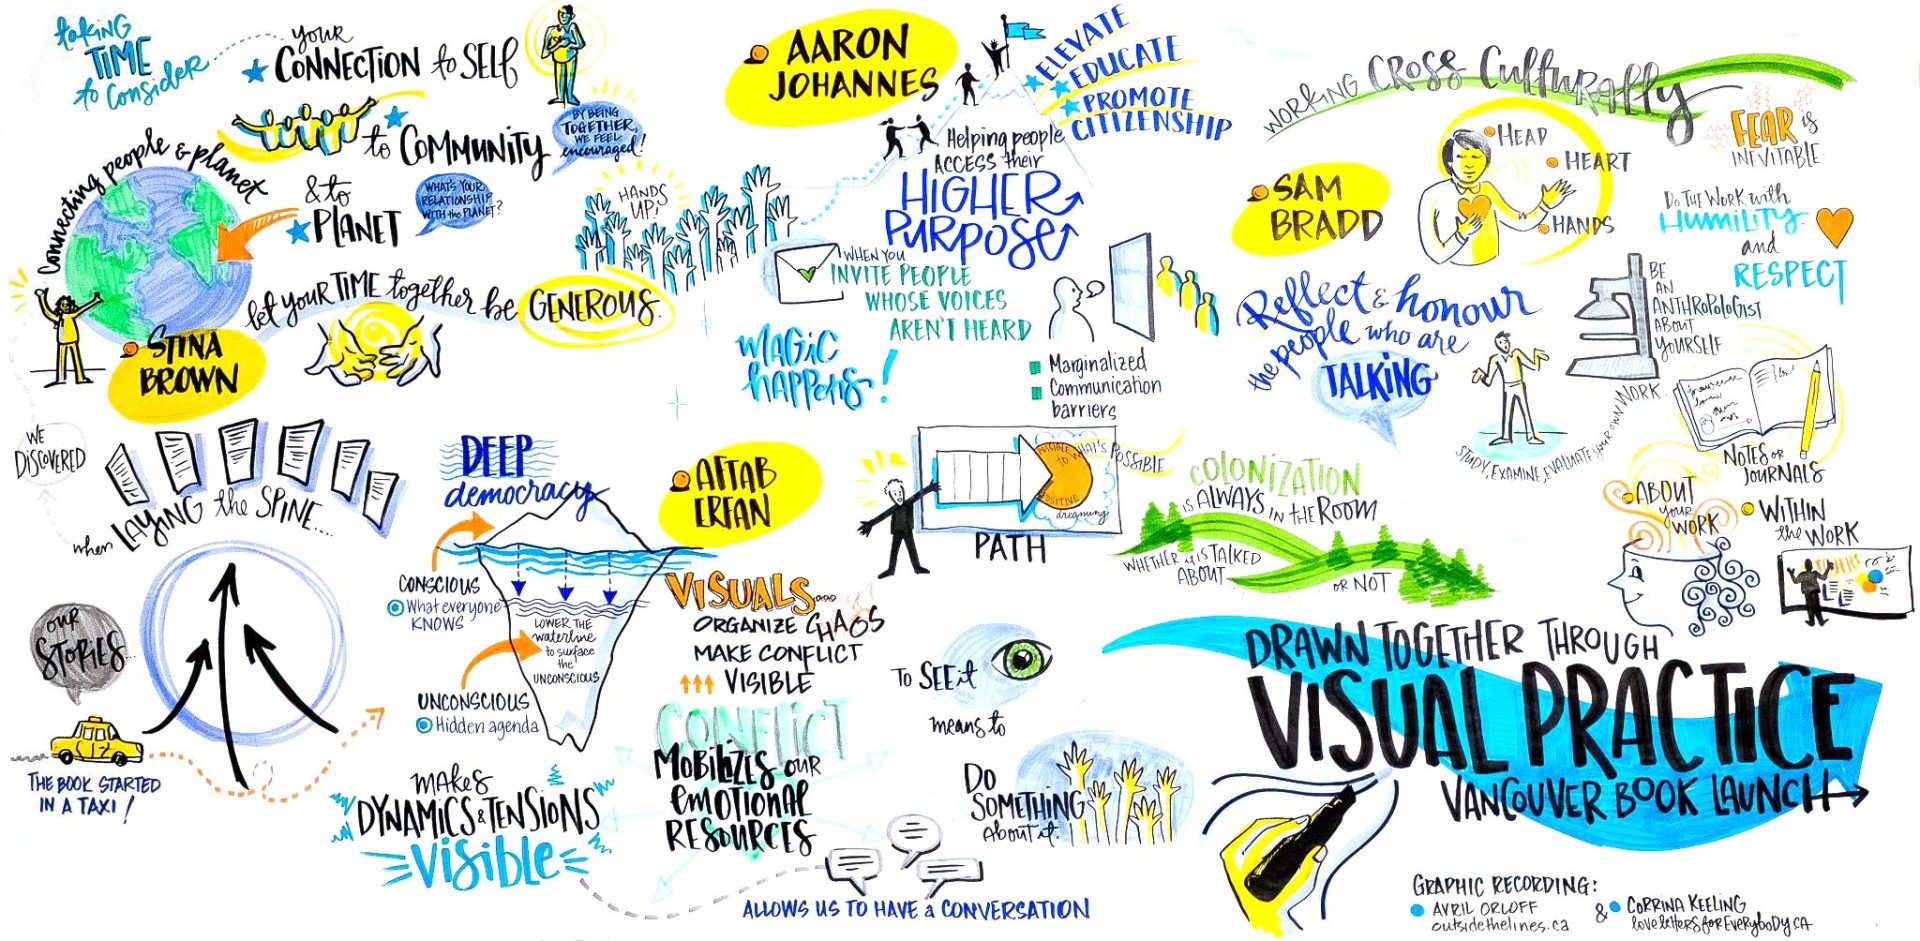 Drawn Together Through Visual Practice graphic recording book launch Vancouver